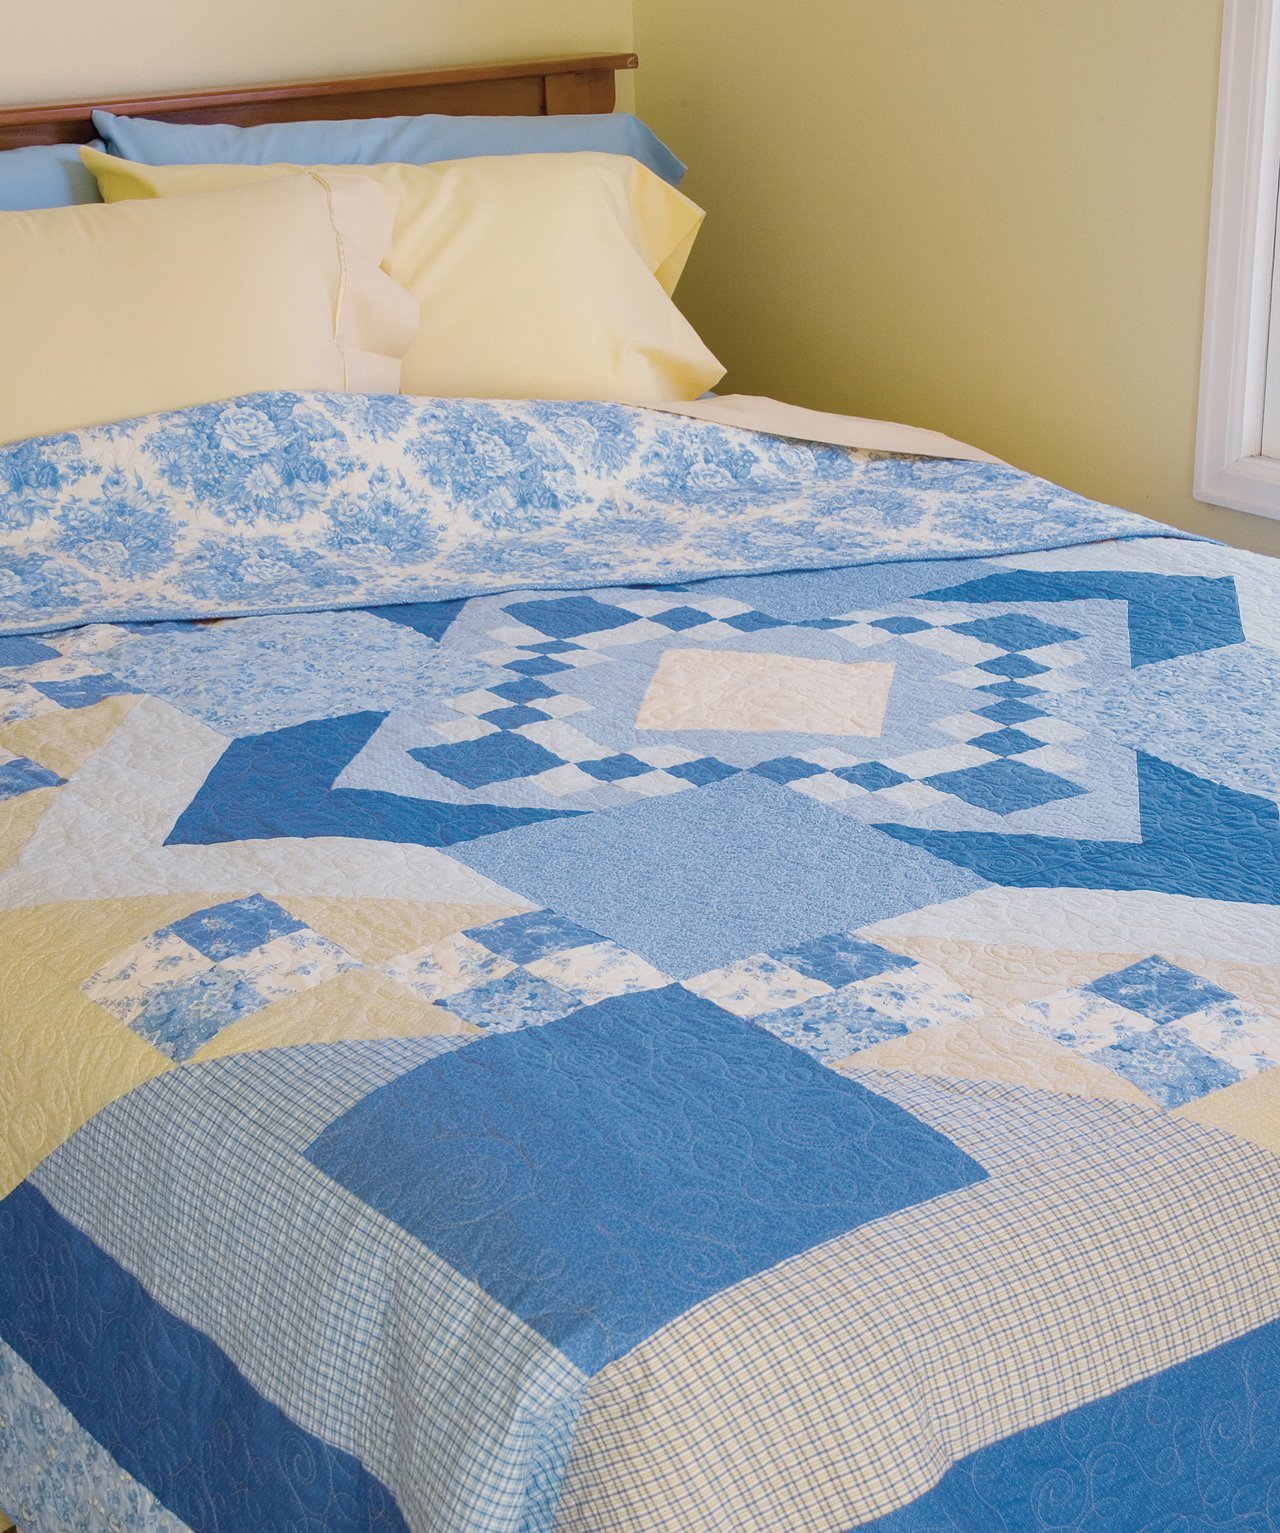 Easy Quilts for Beginners and Beyond: 14 Quilt Patterns from Quiltmaker Magazine by That Patchwork Place (Image #21)